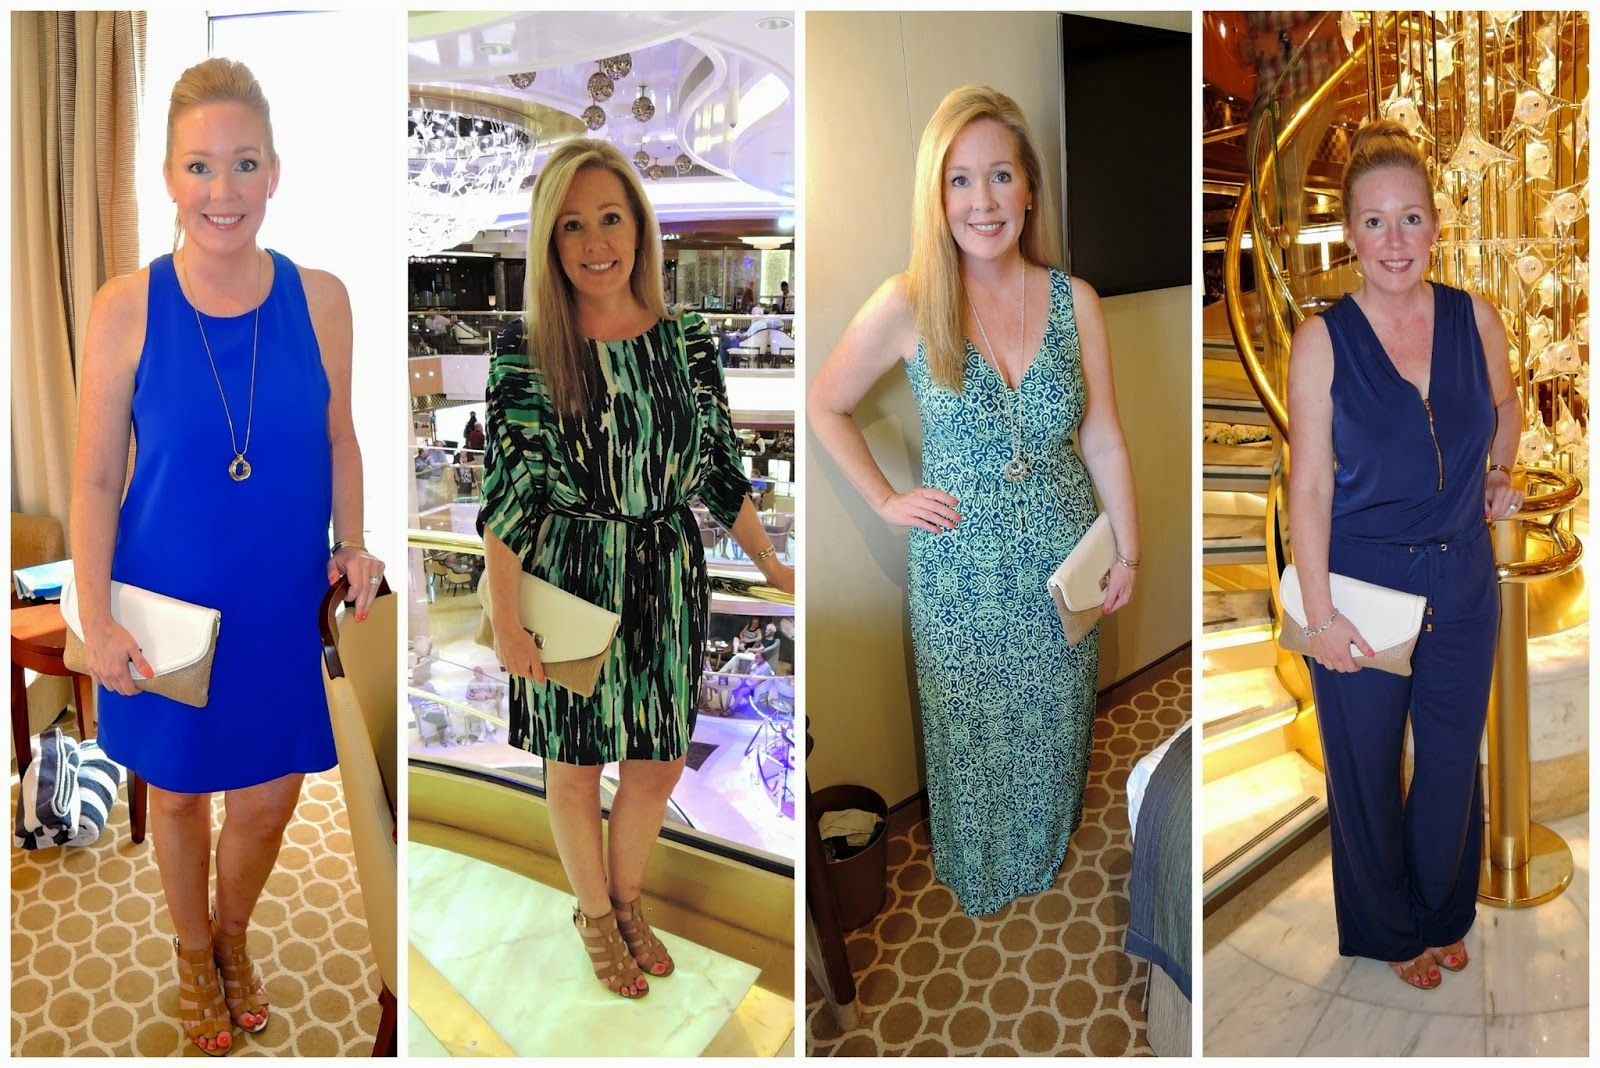 cruise wear - what to wear on a cruise | cruise outfit ideas